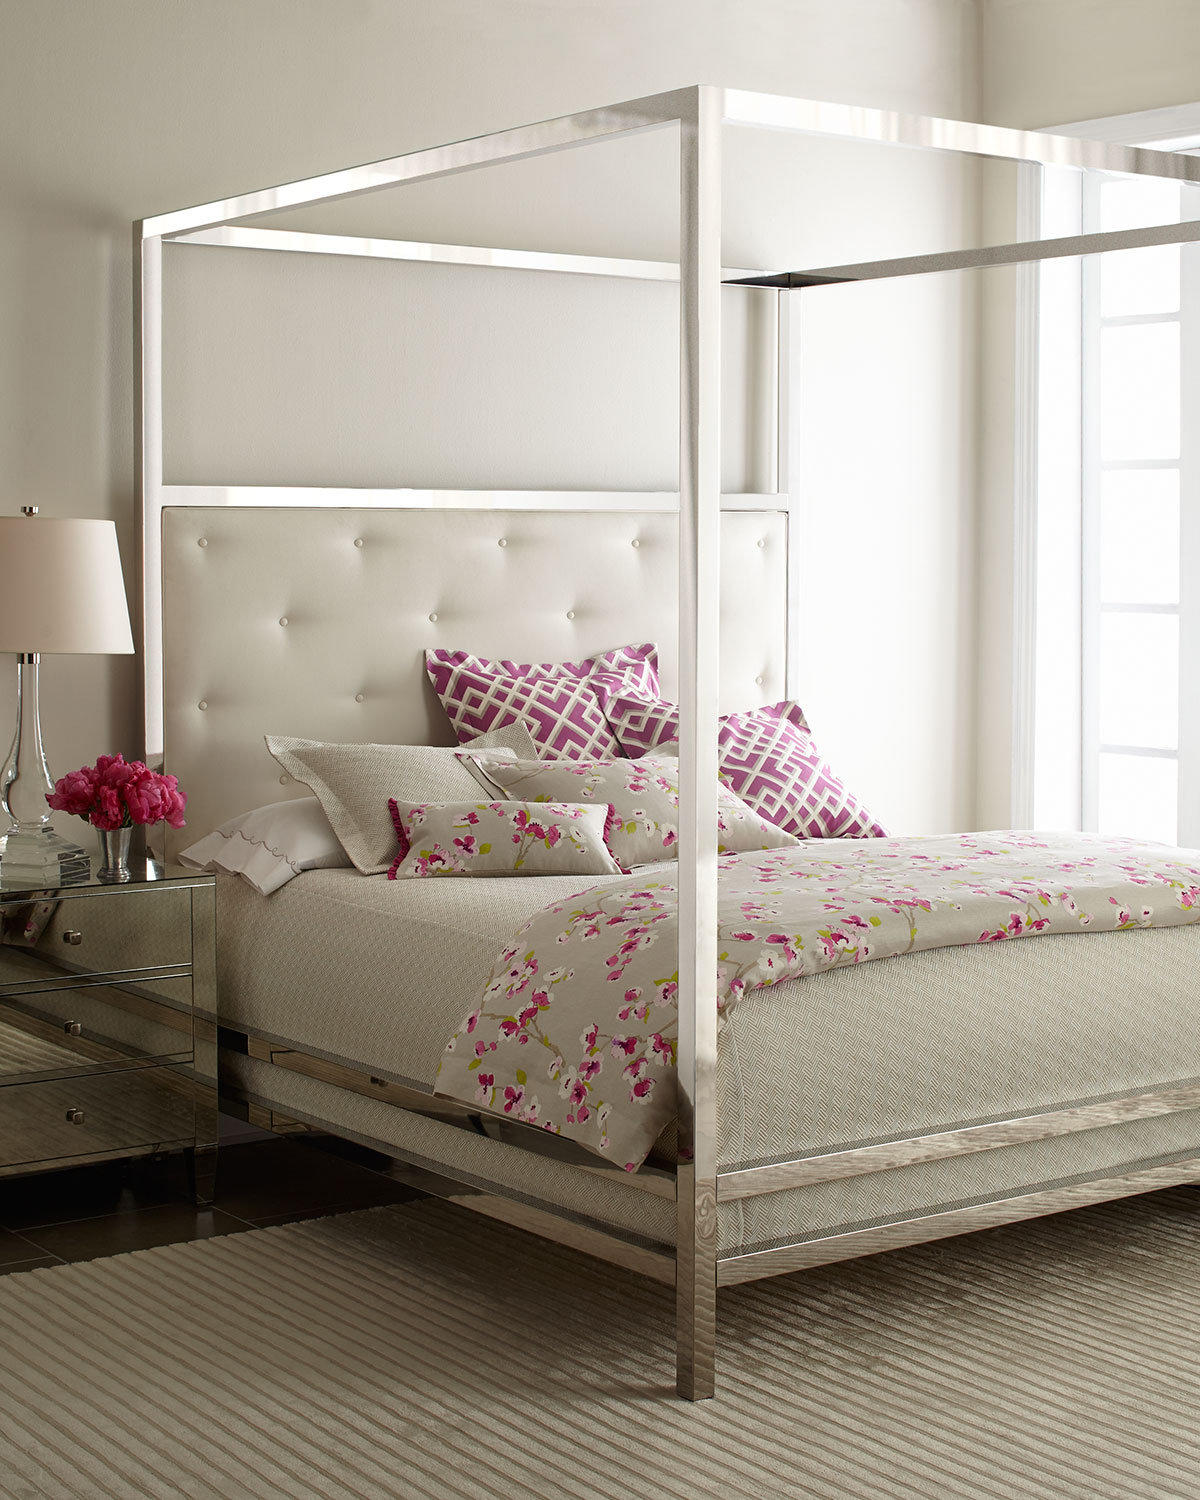 Canopy Bedroom Sets Queen Bedroom Sets With Lights Bedroom Furniture With Price Bedroom Color Ideas For Women: Bernhardt Magdalena Bedroom Furniture From Horchow